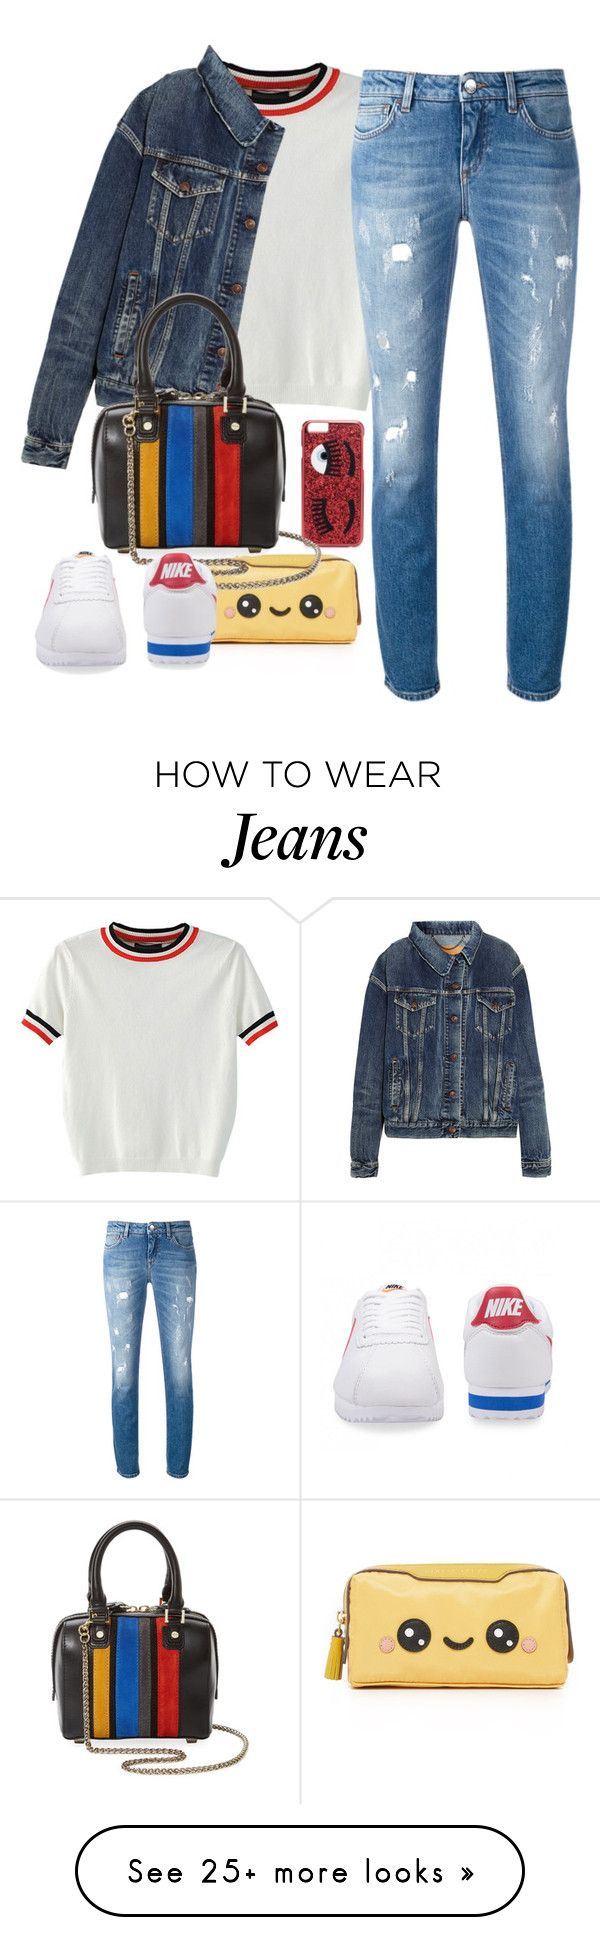 """""""Beg Your Pardon"""" by chelsofly on Polyvore featuring Chiara Ferragni, WithChic, Dolce&Gabbana, Balenciaga, Anya Hindmarch and Alice + Olivia"""